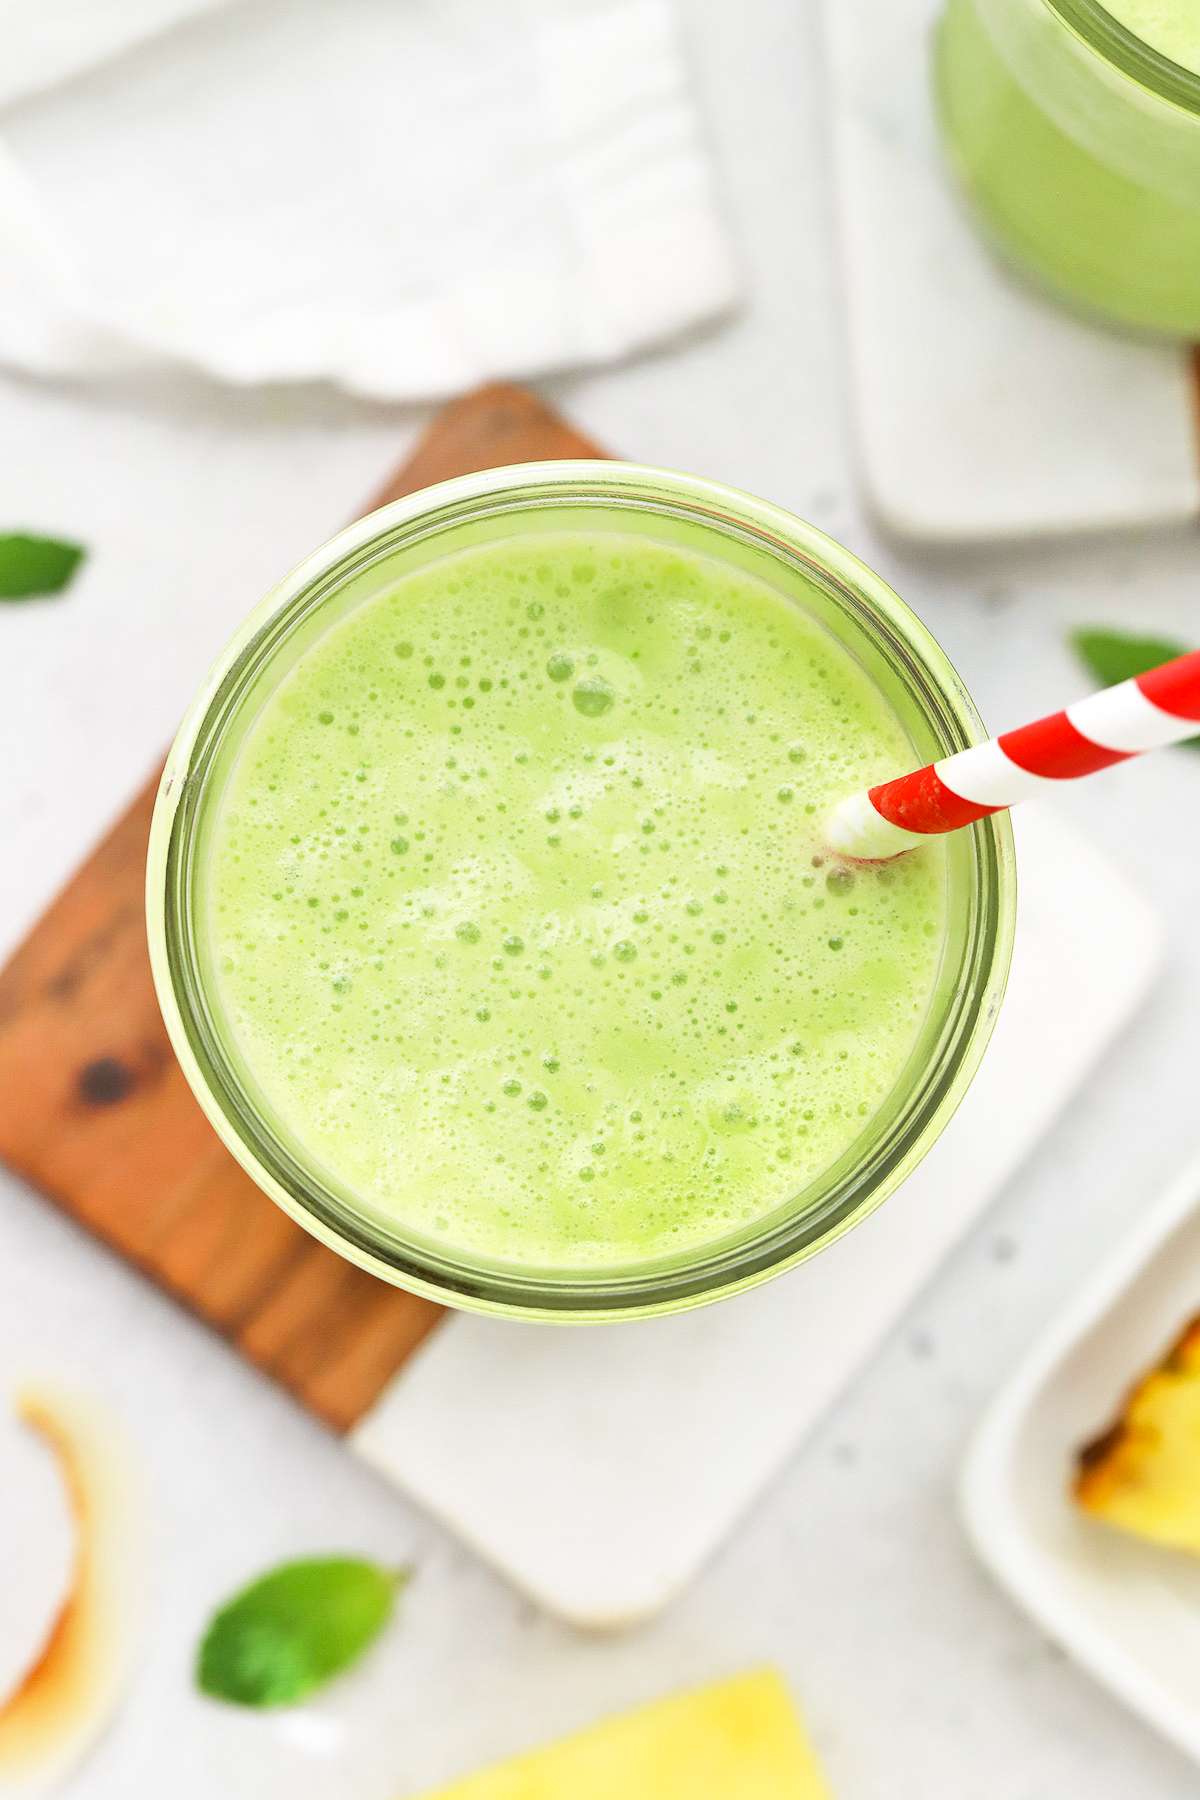 Close up overhead view of pineapple mint smoothie in a glass with a red striped straw